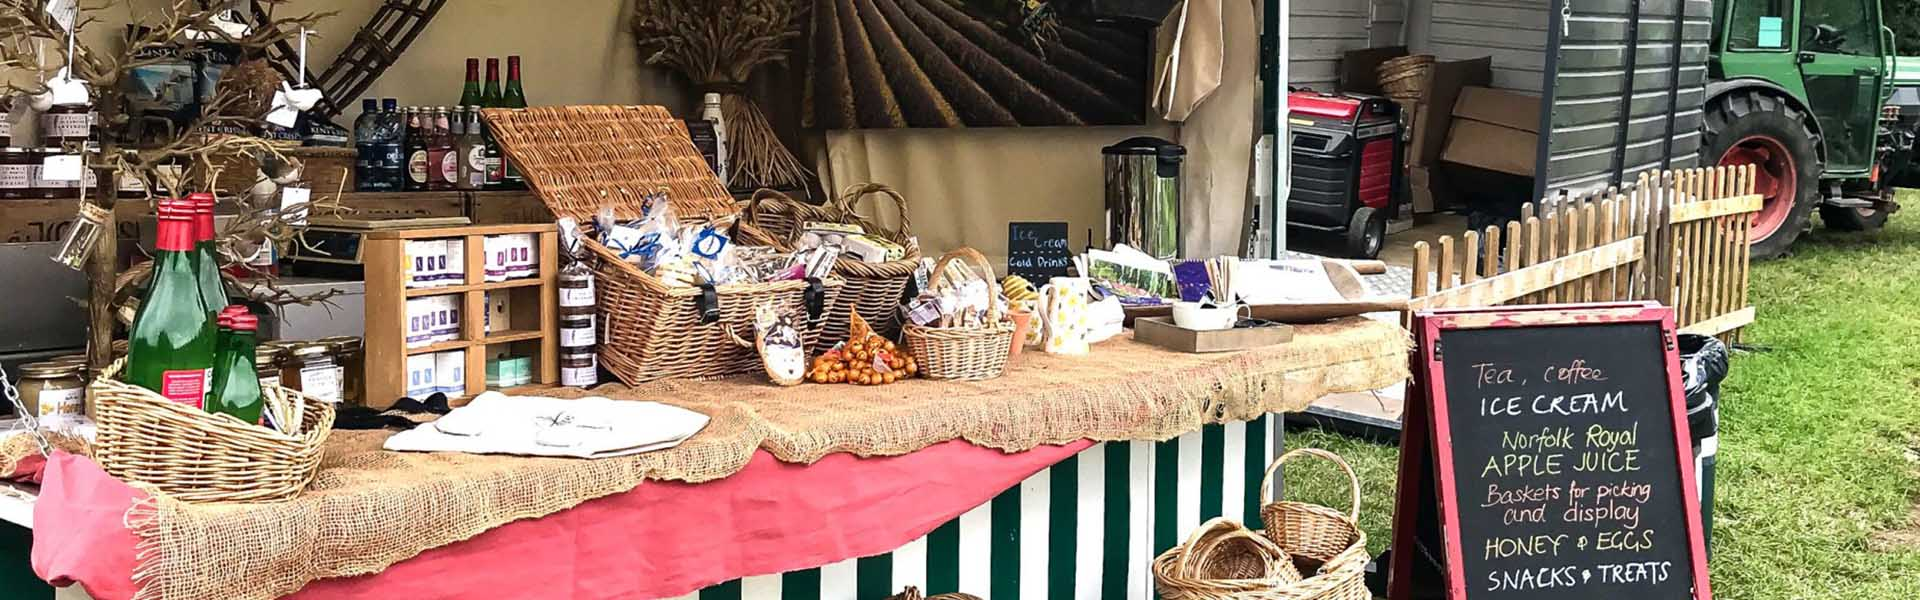 Market stall at Castle Farm displaying food products